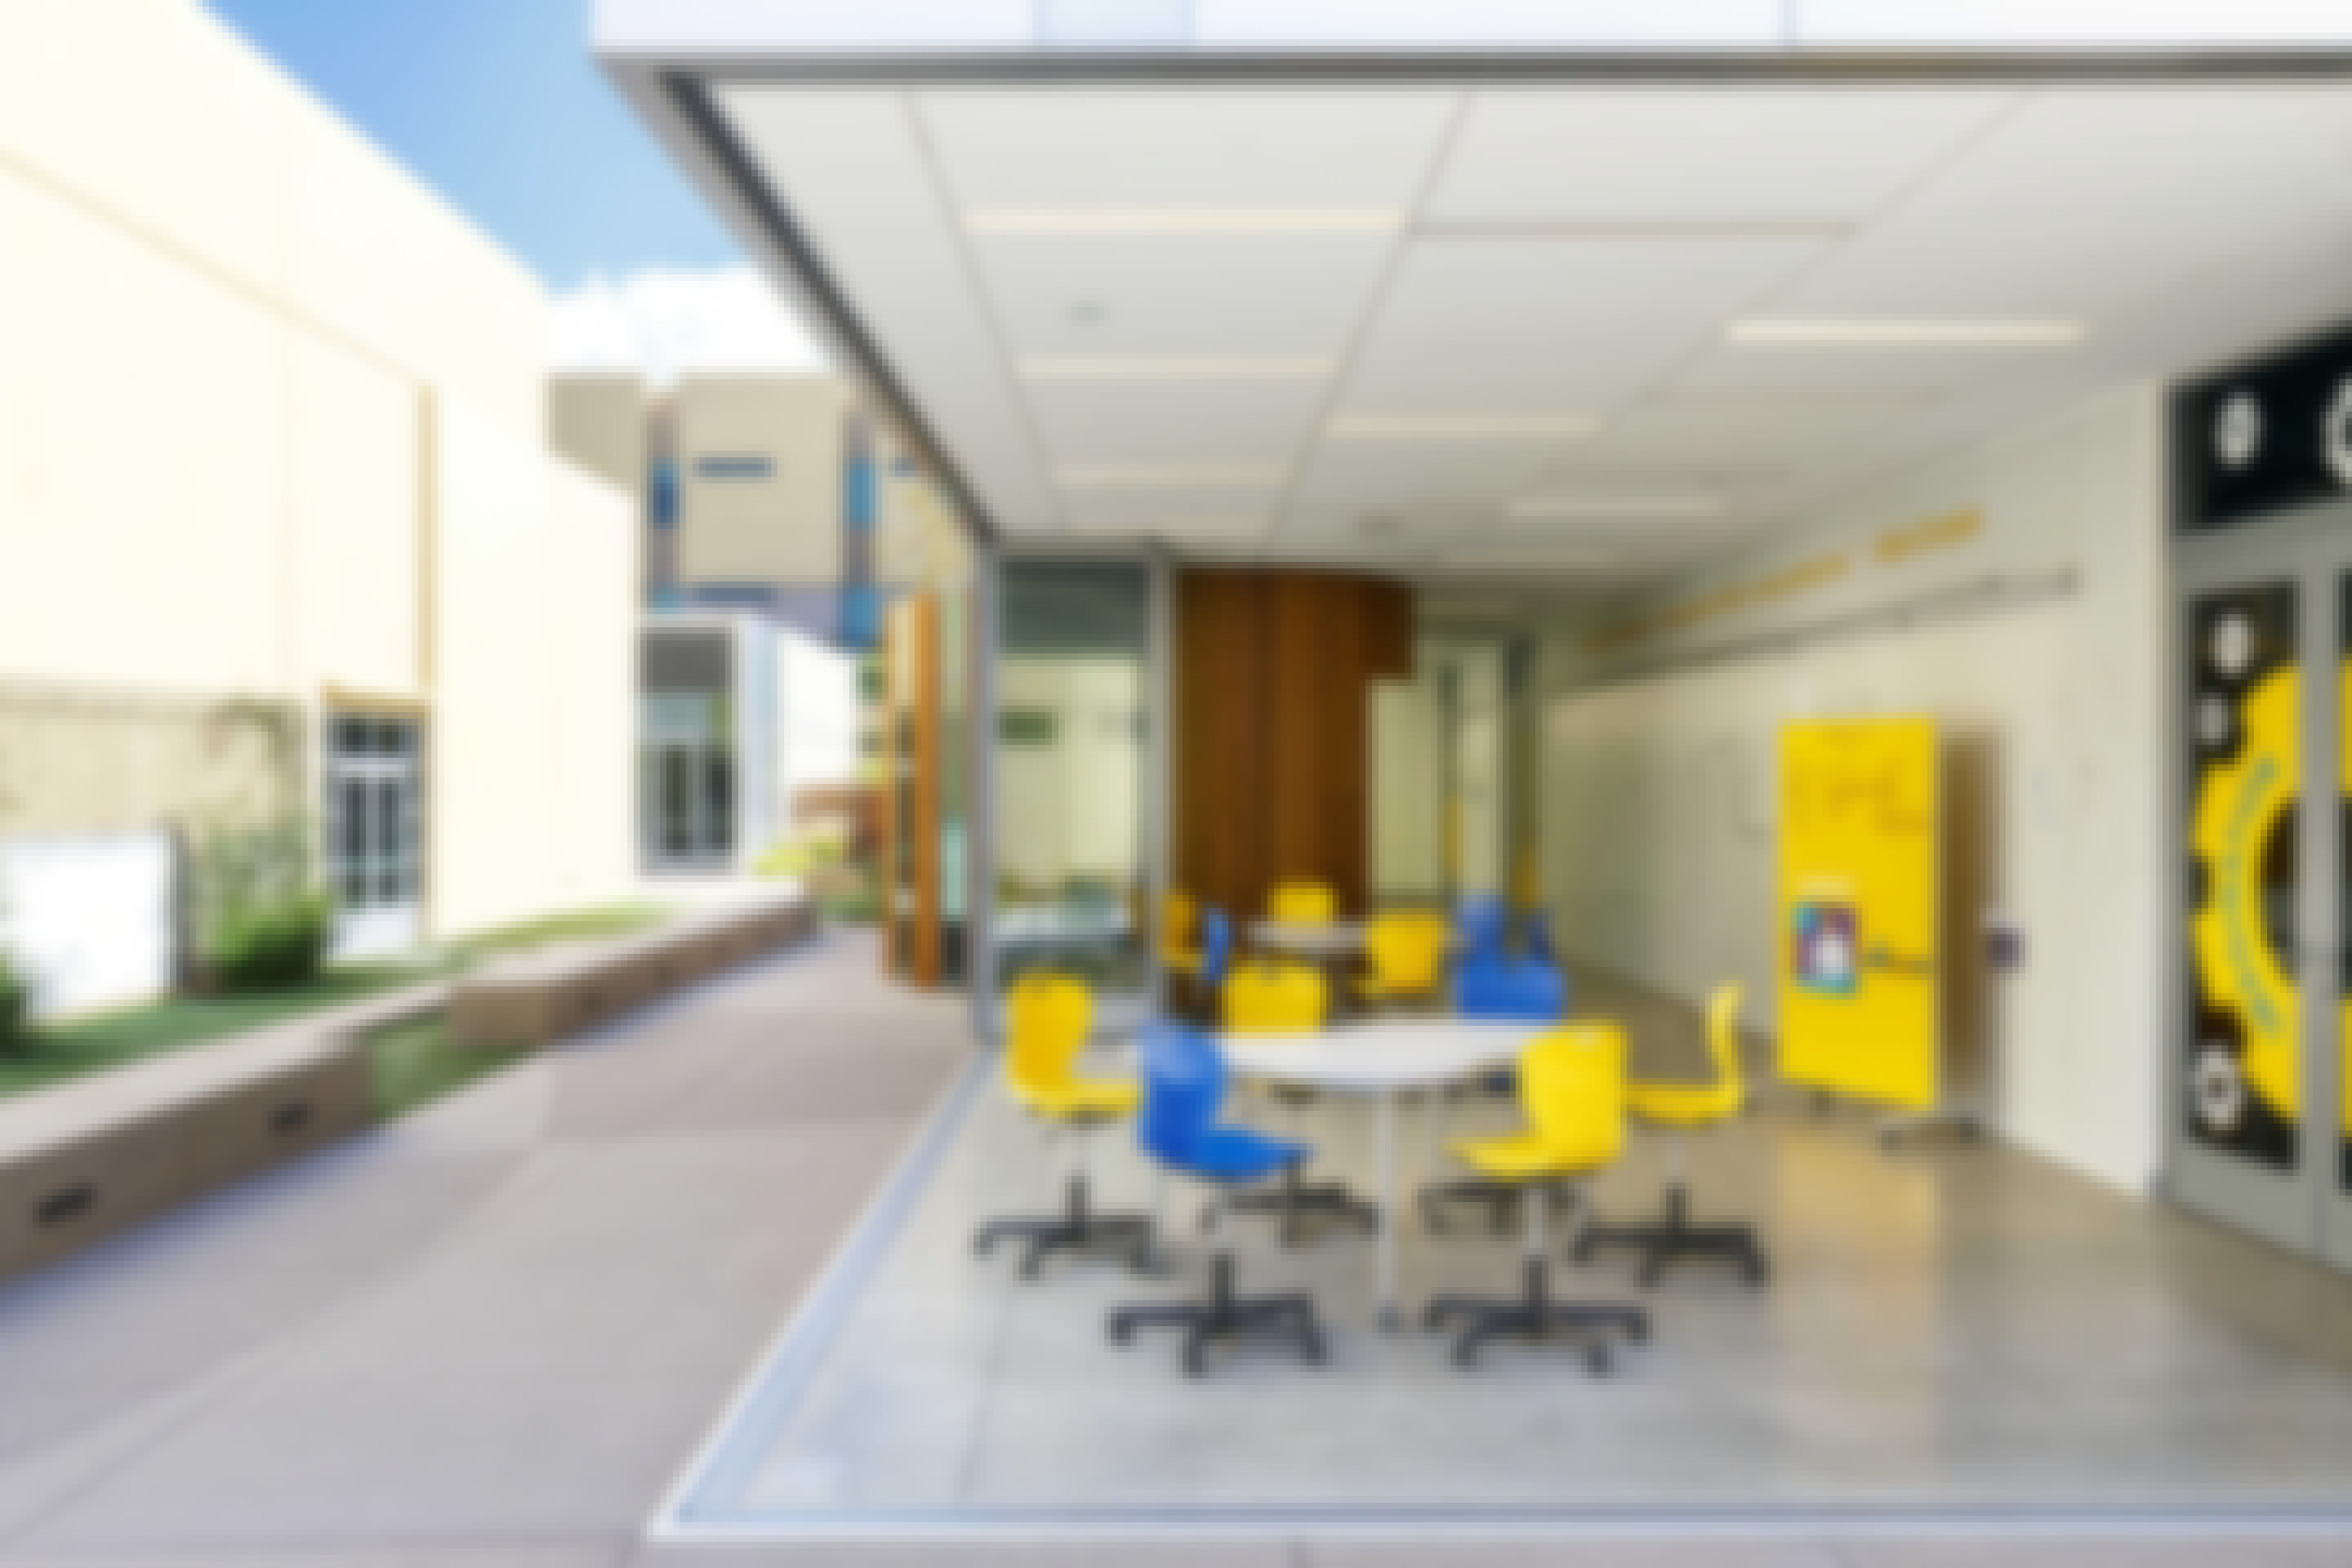 21st-century-classroom-design-with-sliding-glass-wall